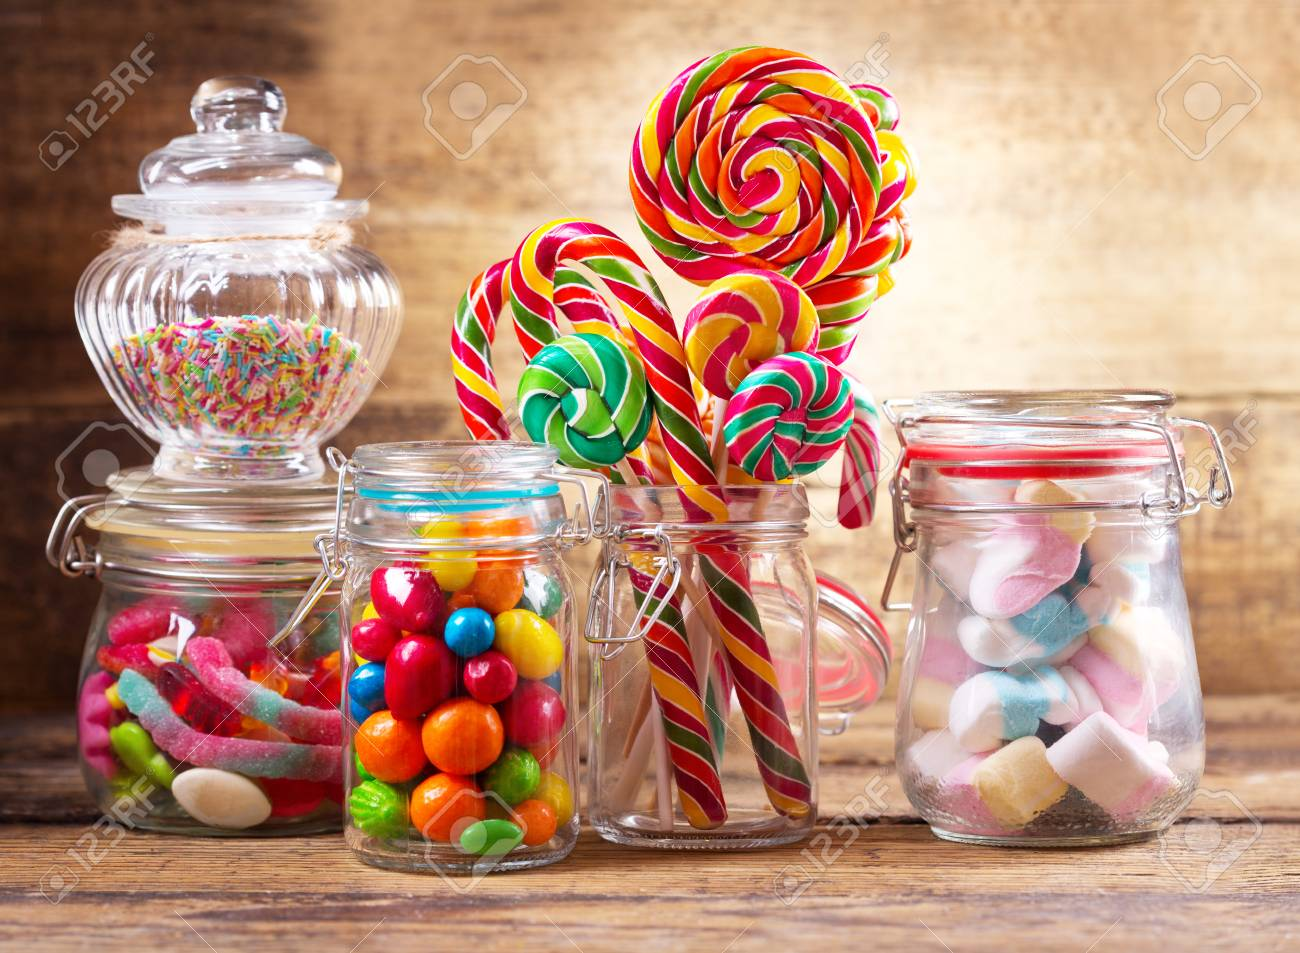 Colorful candies, lollipops and marshmallows in a glass jars on wooden table - 91470347